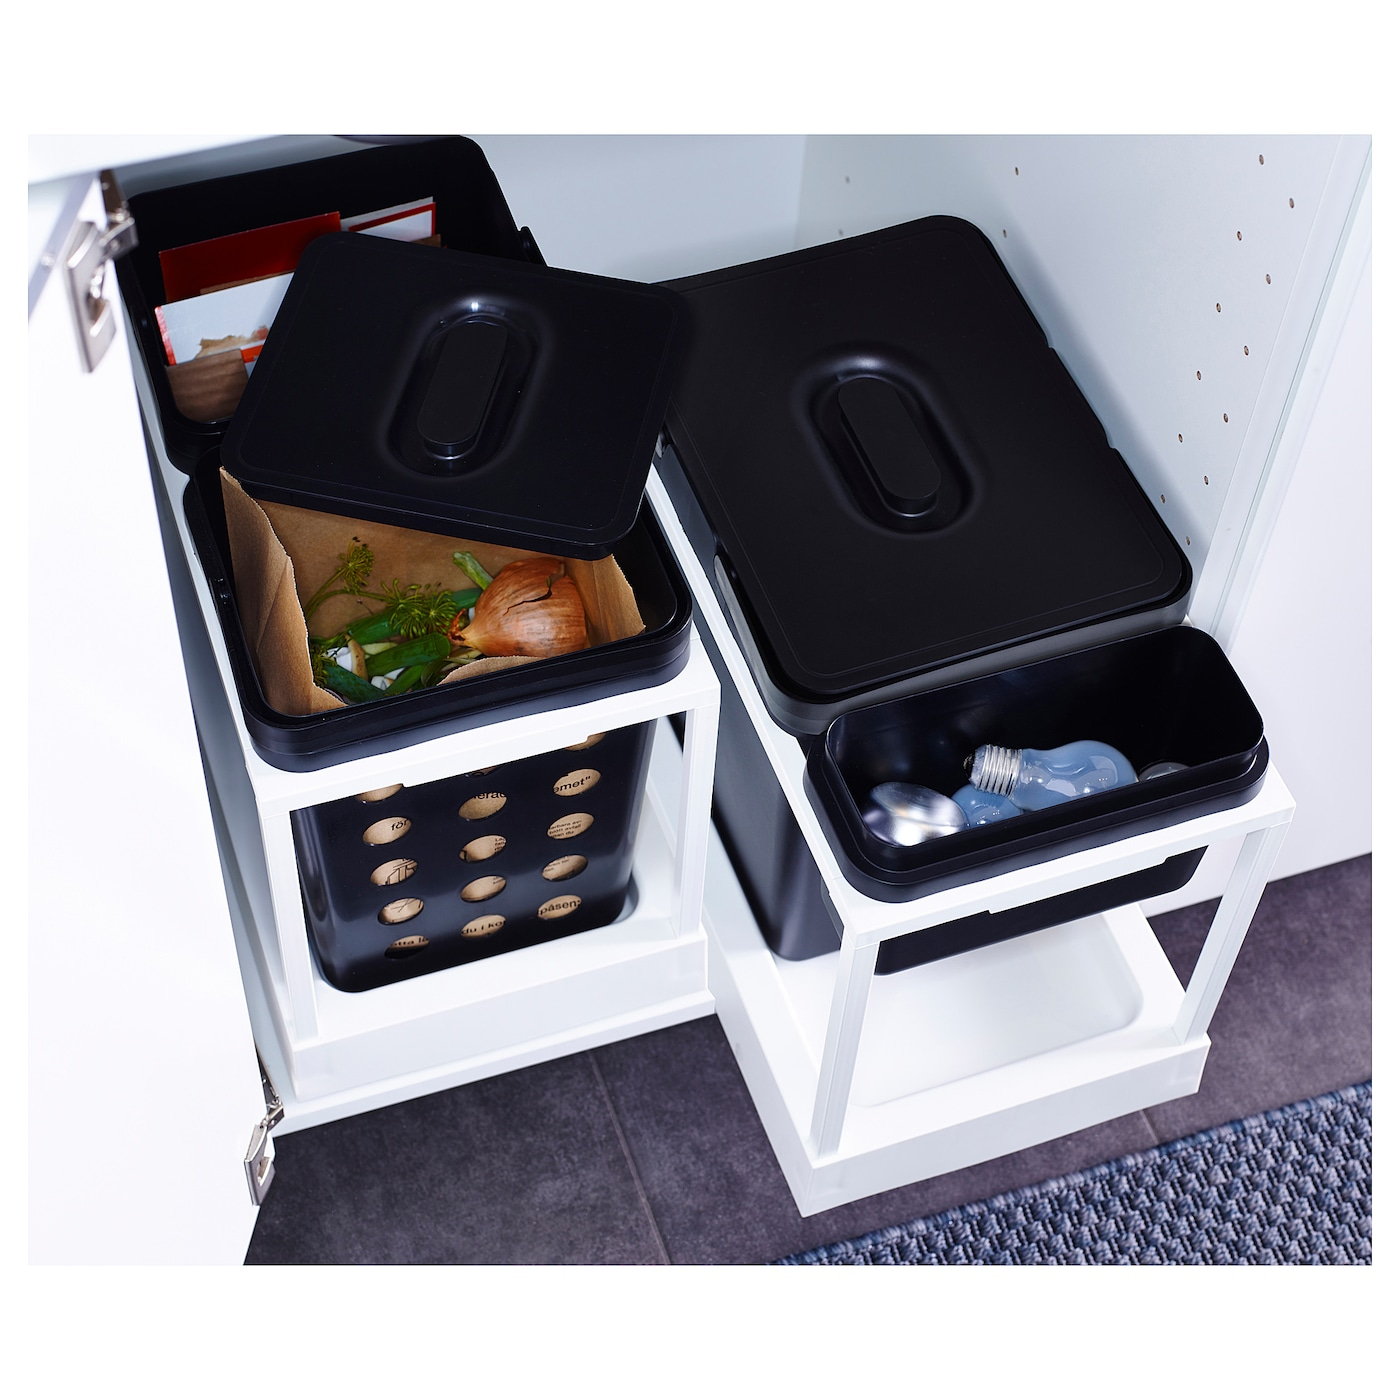 IKEA VARIERA lid for waste-sorting bin